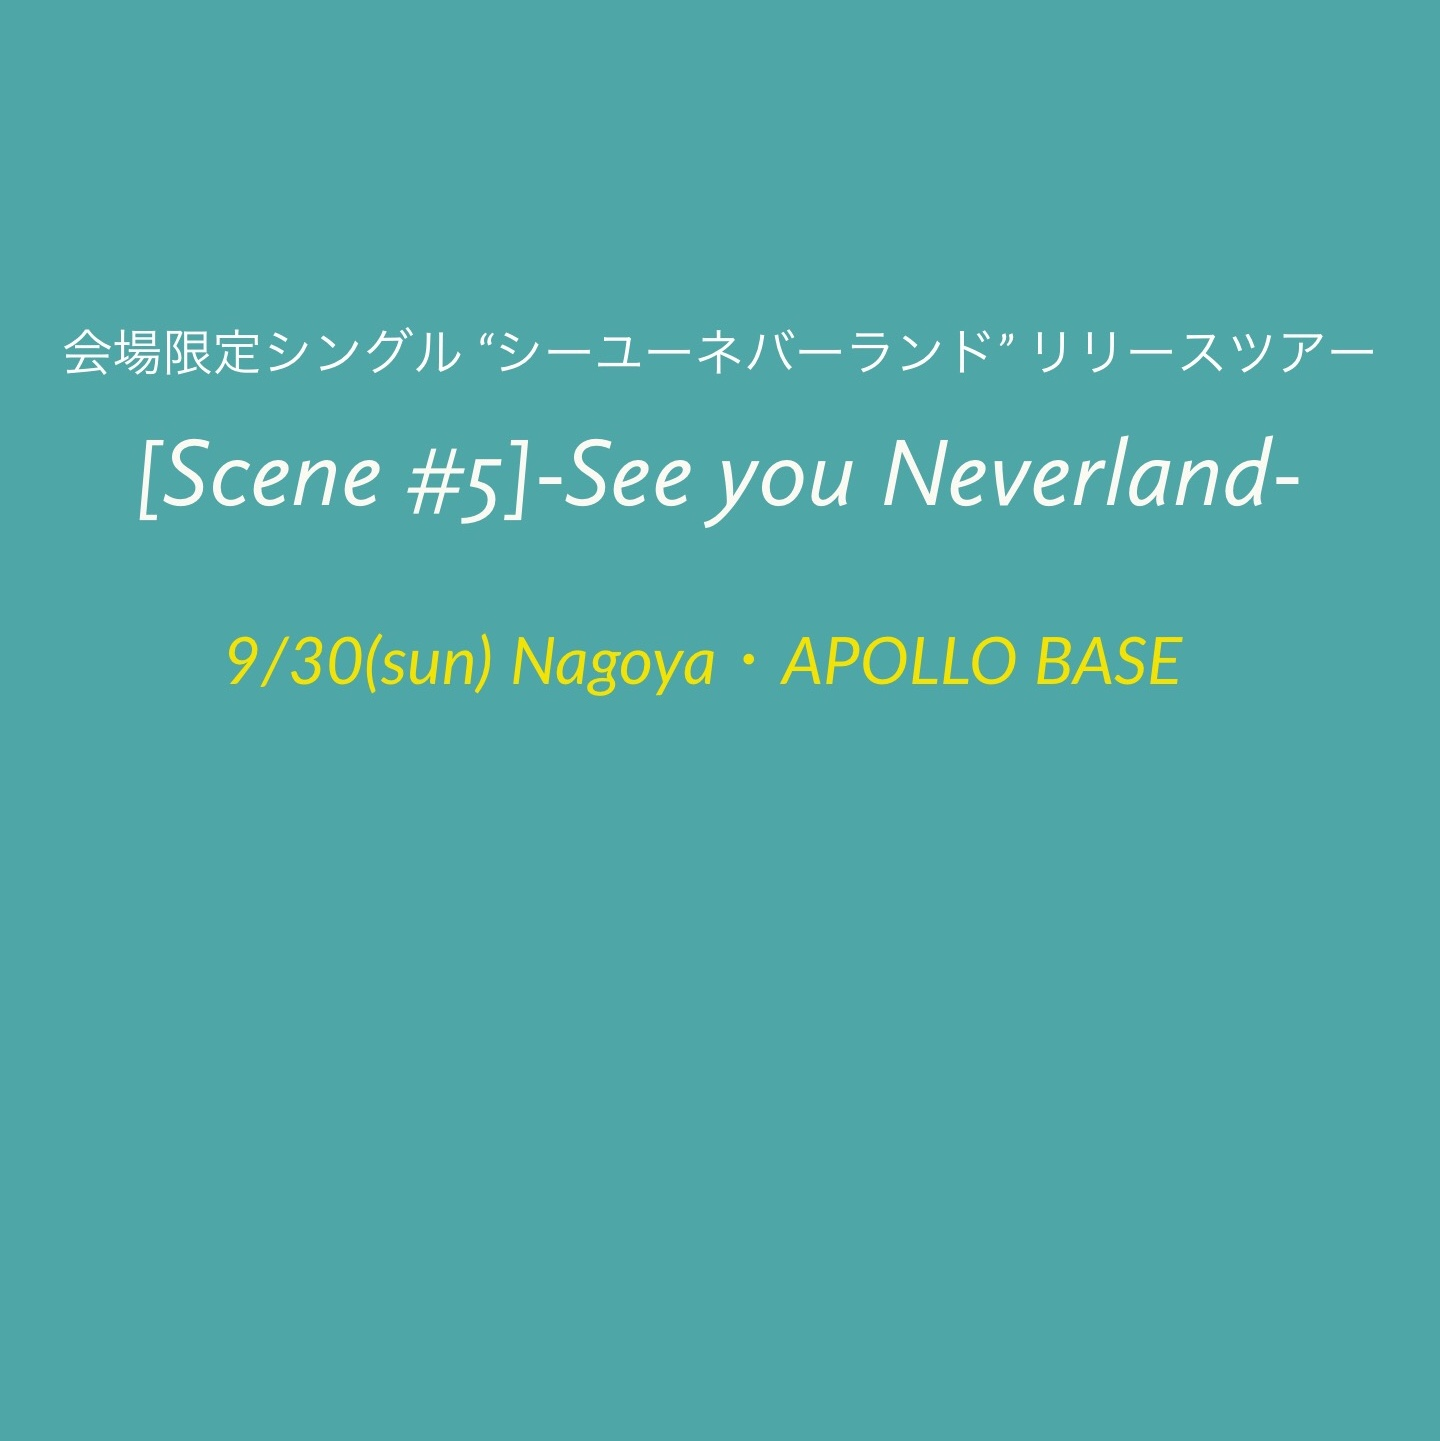 [Scene #5]-See you Neverland-(名古屋APOLLO BASE)